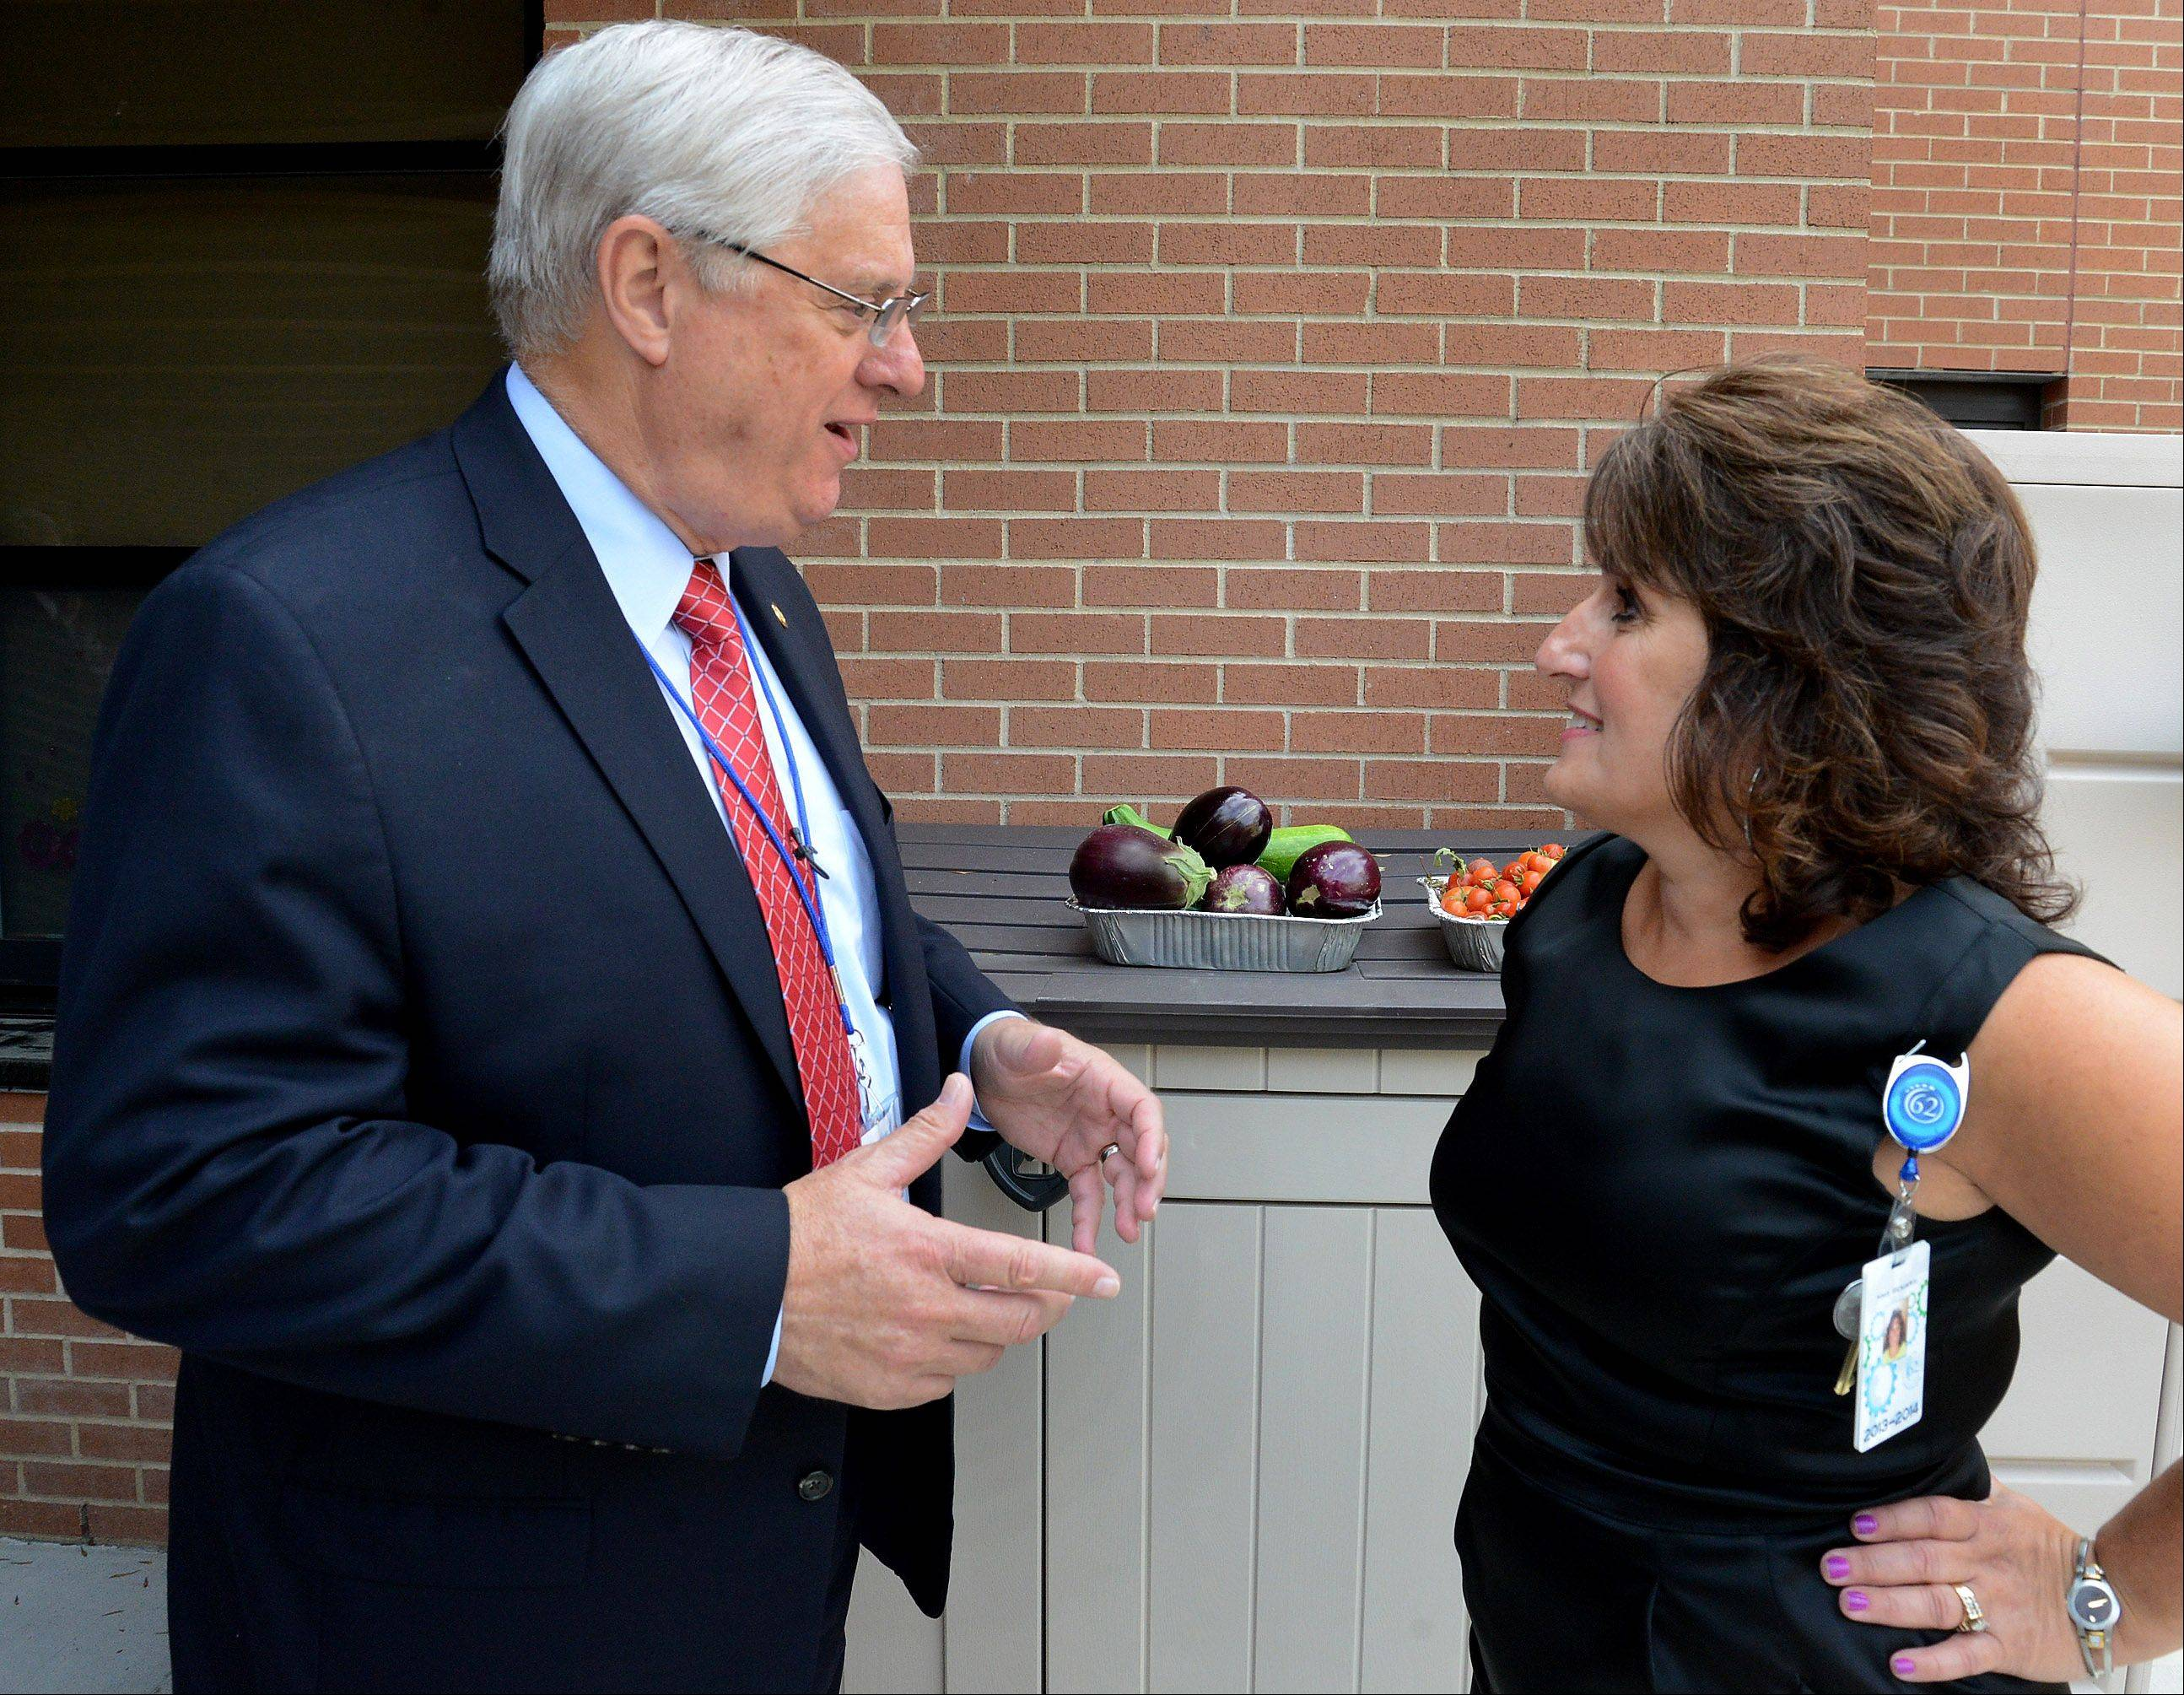 Margie Beniaris, director of Early Learning Center, talks about the vegetables the children grow in their garden to Dennis Van Roekel, president of the National Education Association, during a tour of the Early Learning Childhood Center at Forest Elementary School in Des Plaines.